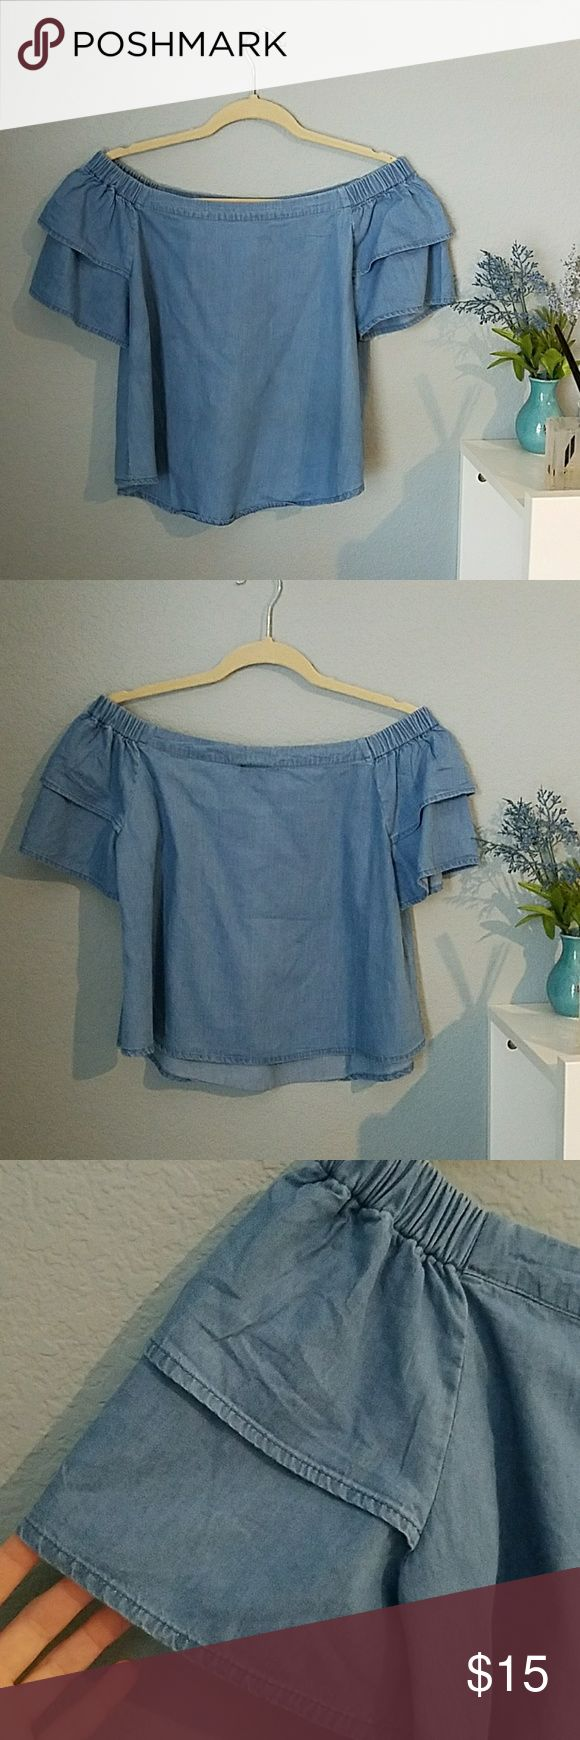 Ruffle off shoulder blue top Cute and stylish! Size small but will fit if you are you usually and xs or medium. Easy to accessorize and great with white jeans or jean shorts. 😊 Fashion Web Tops